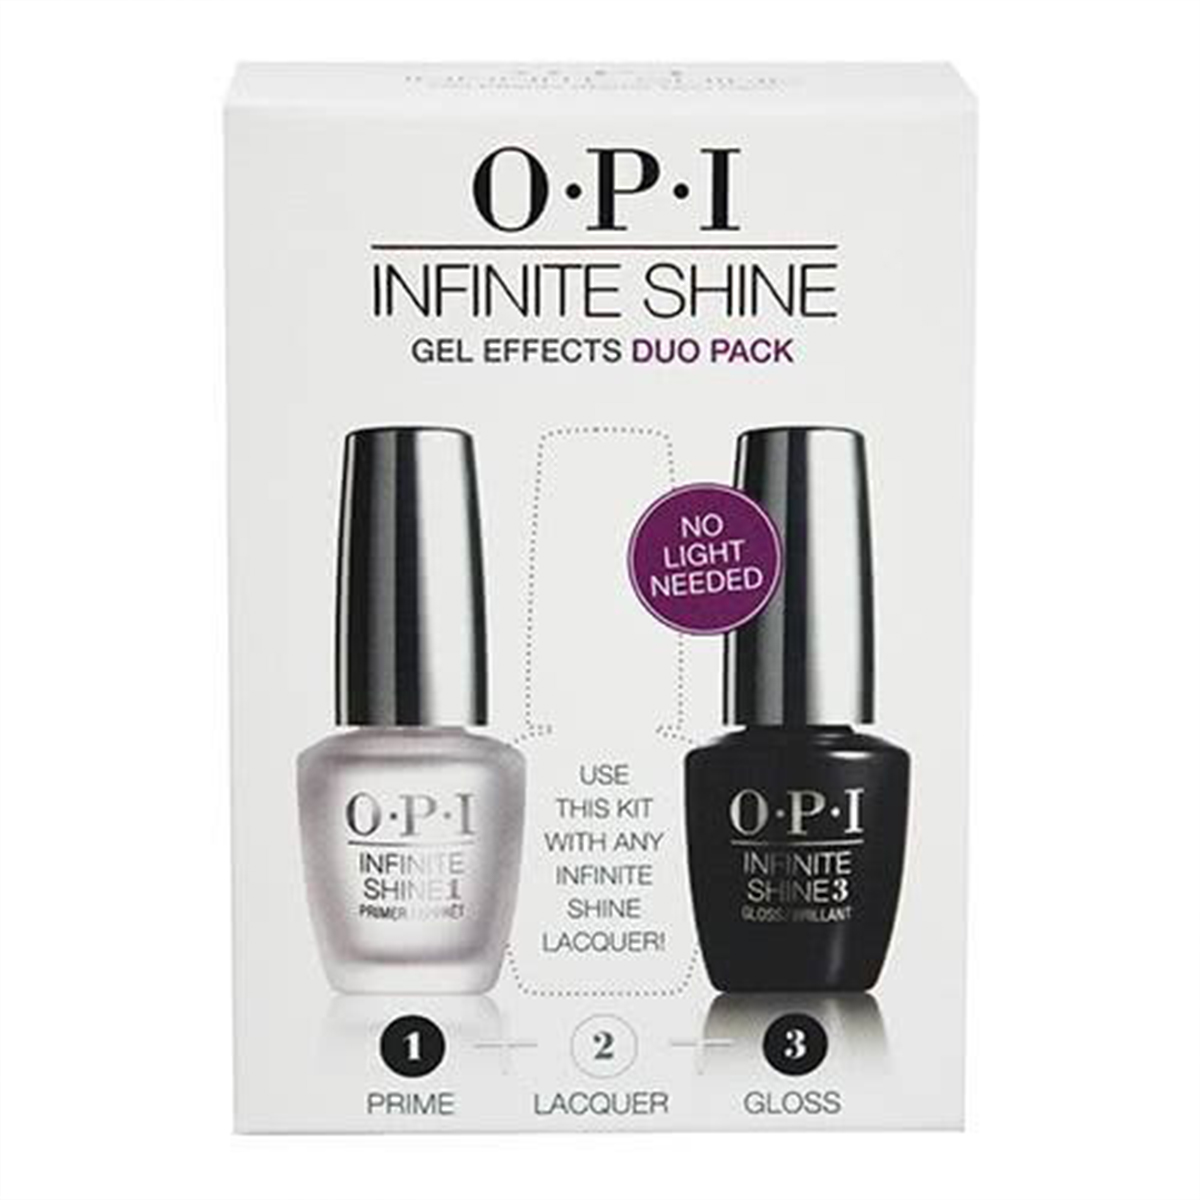 Box featuring two bottles of Opi nail polish on the front